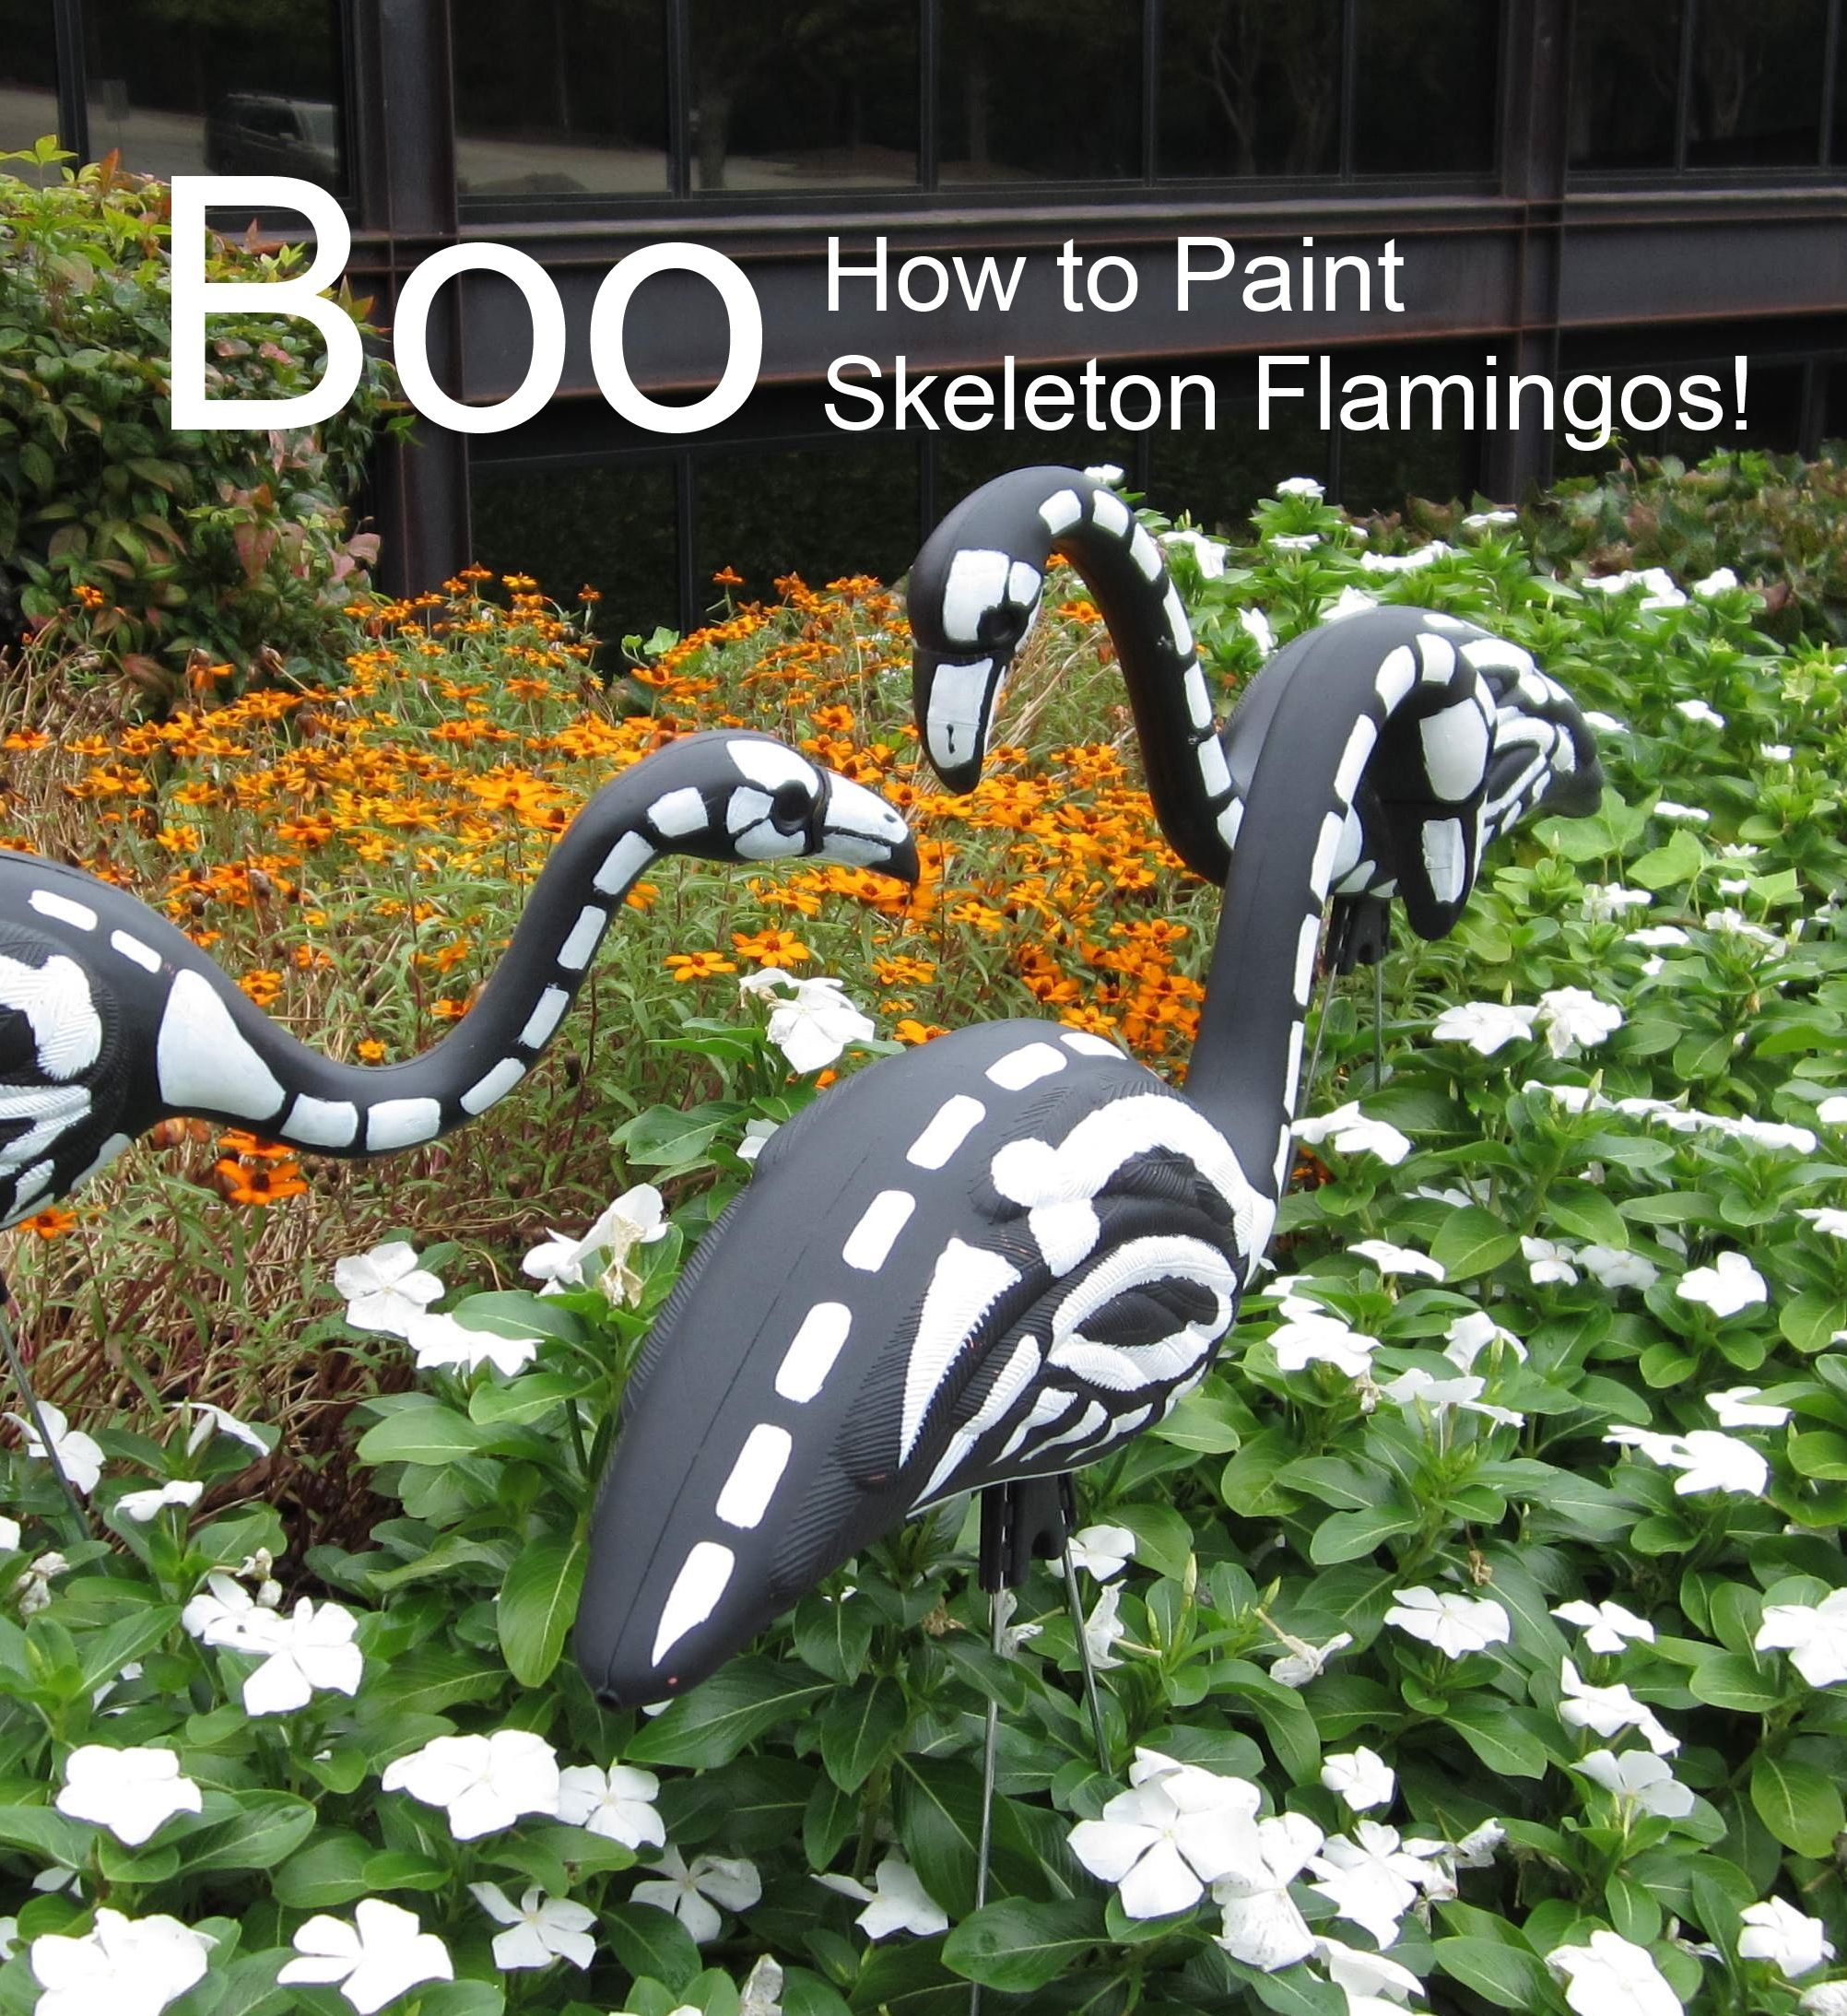 How to paint skeleton flamingos. Tutorial here: http://community ...